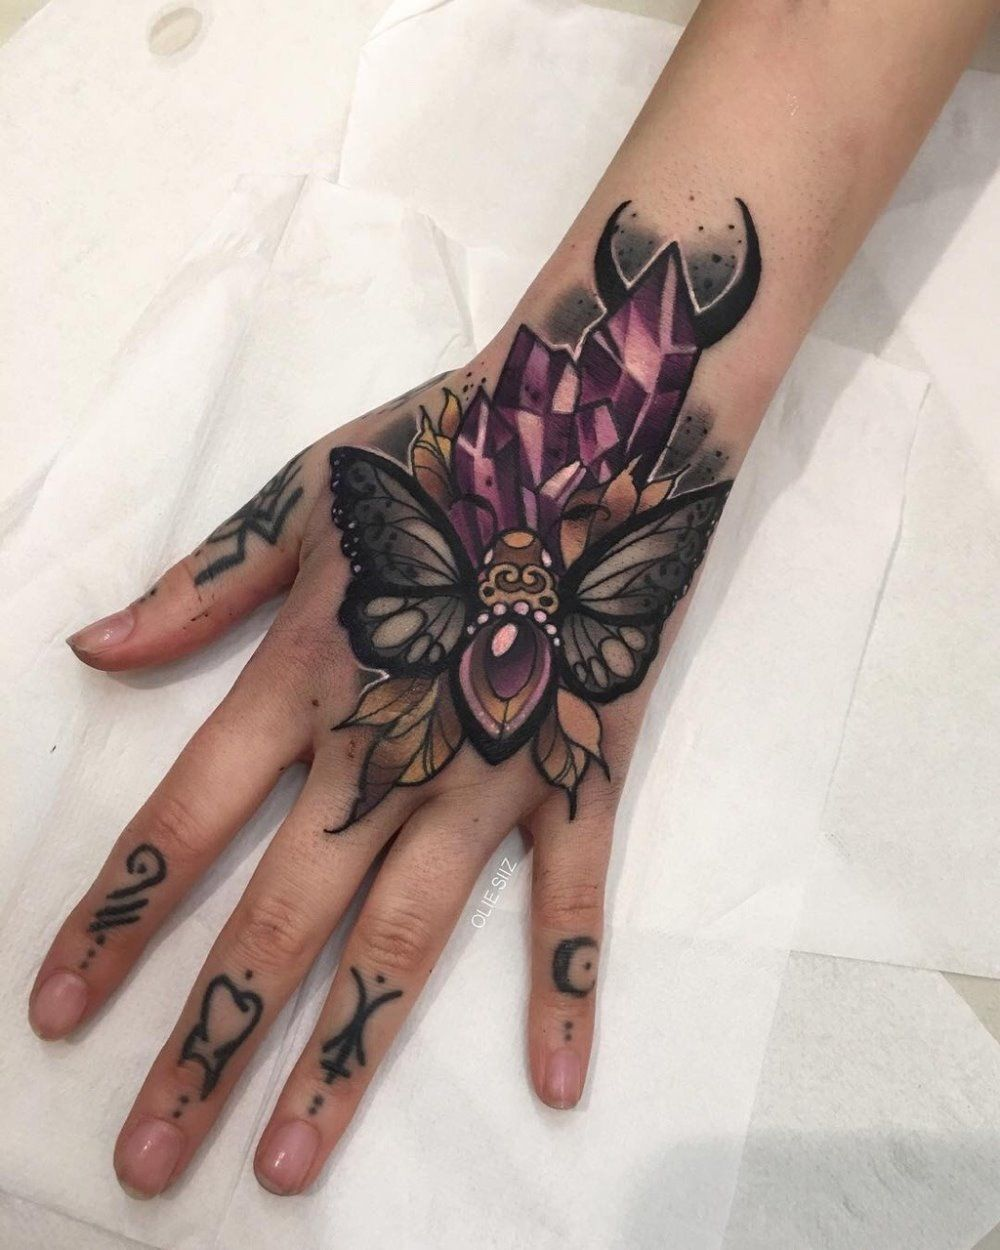 covering up hand tattoos for work